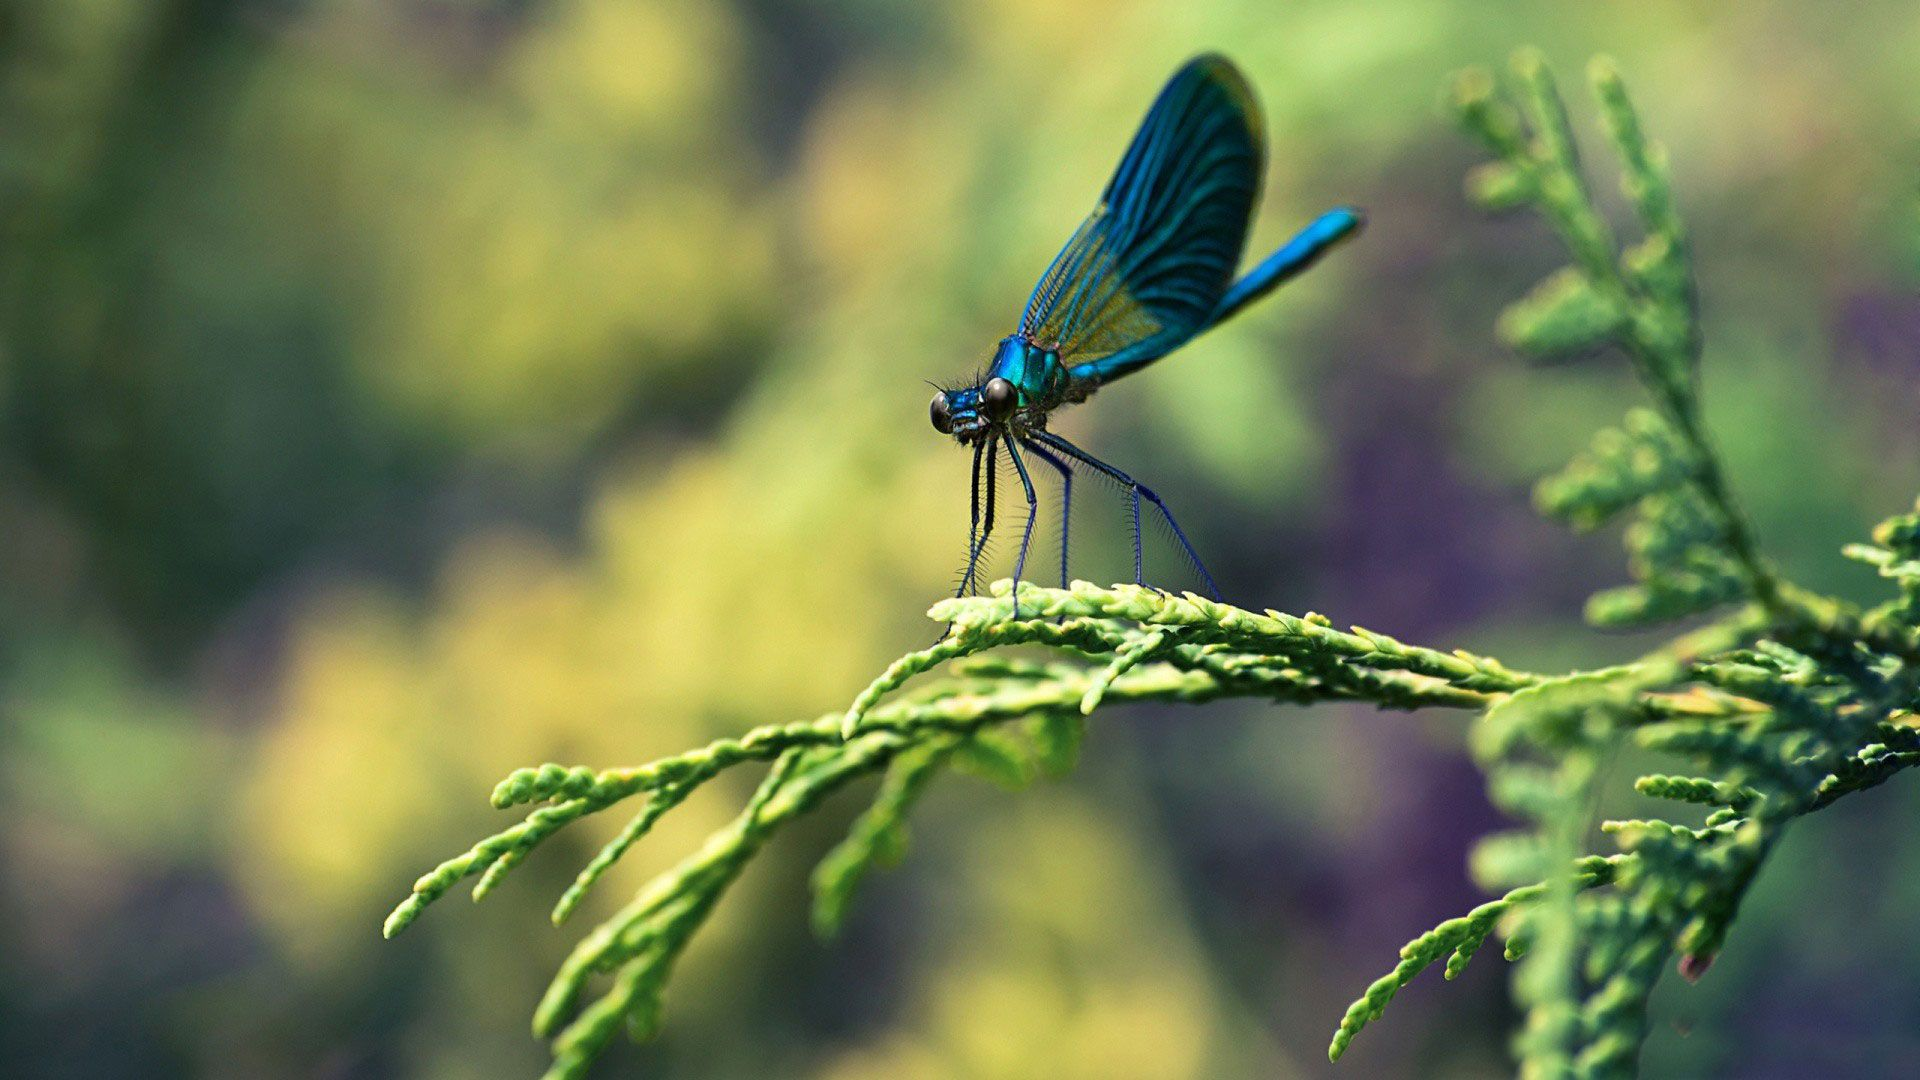 hd pics photos cute dragonfly colorful macro nature hd quality